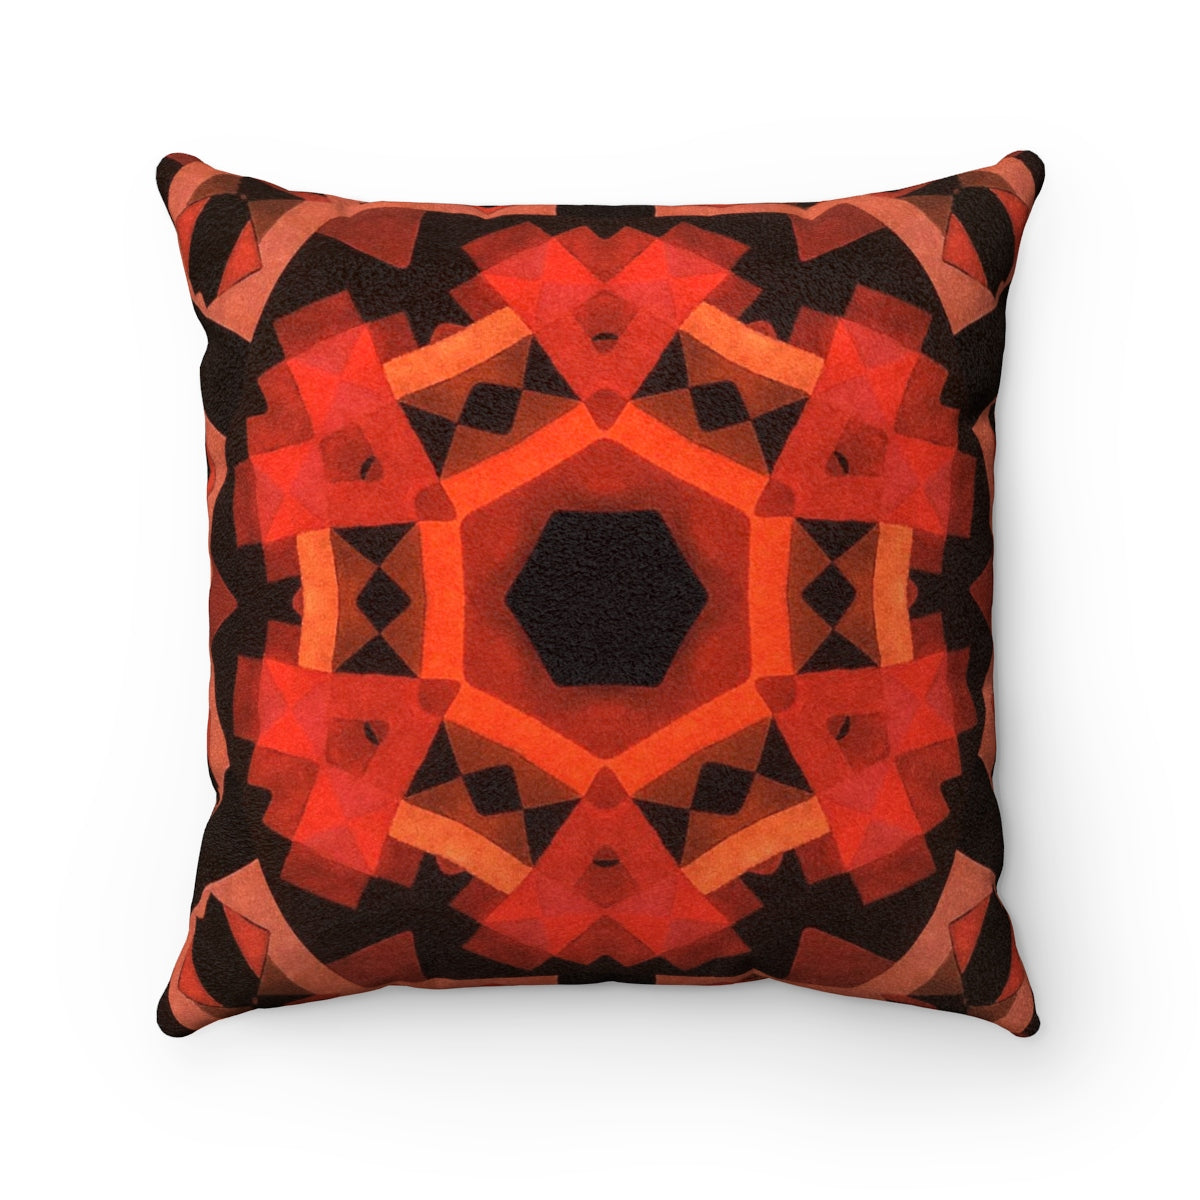 Kaleidoscope Design Suede Pillow